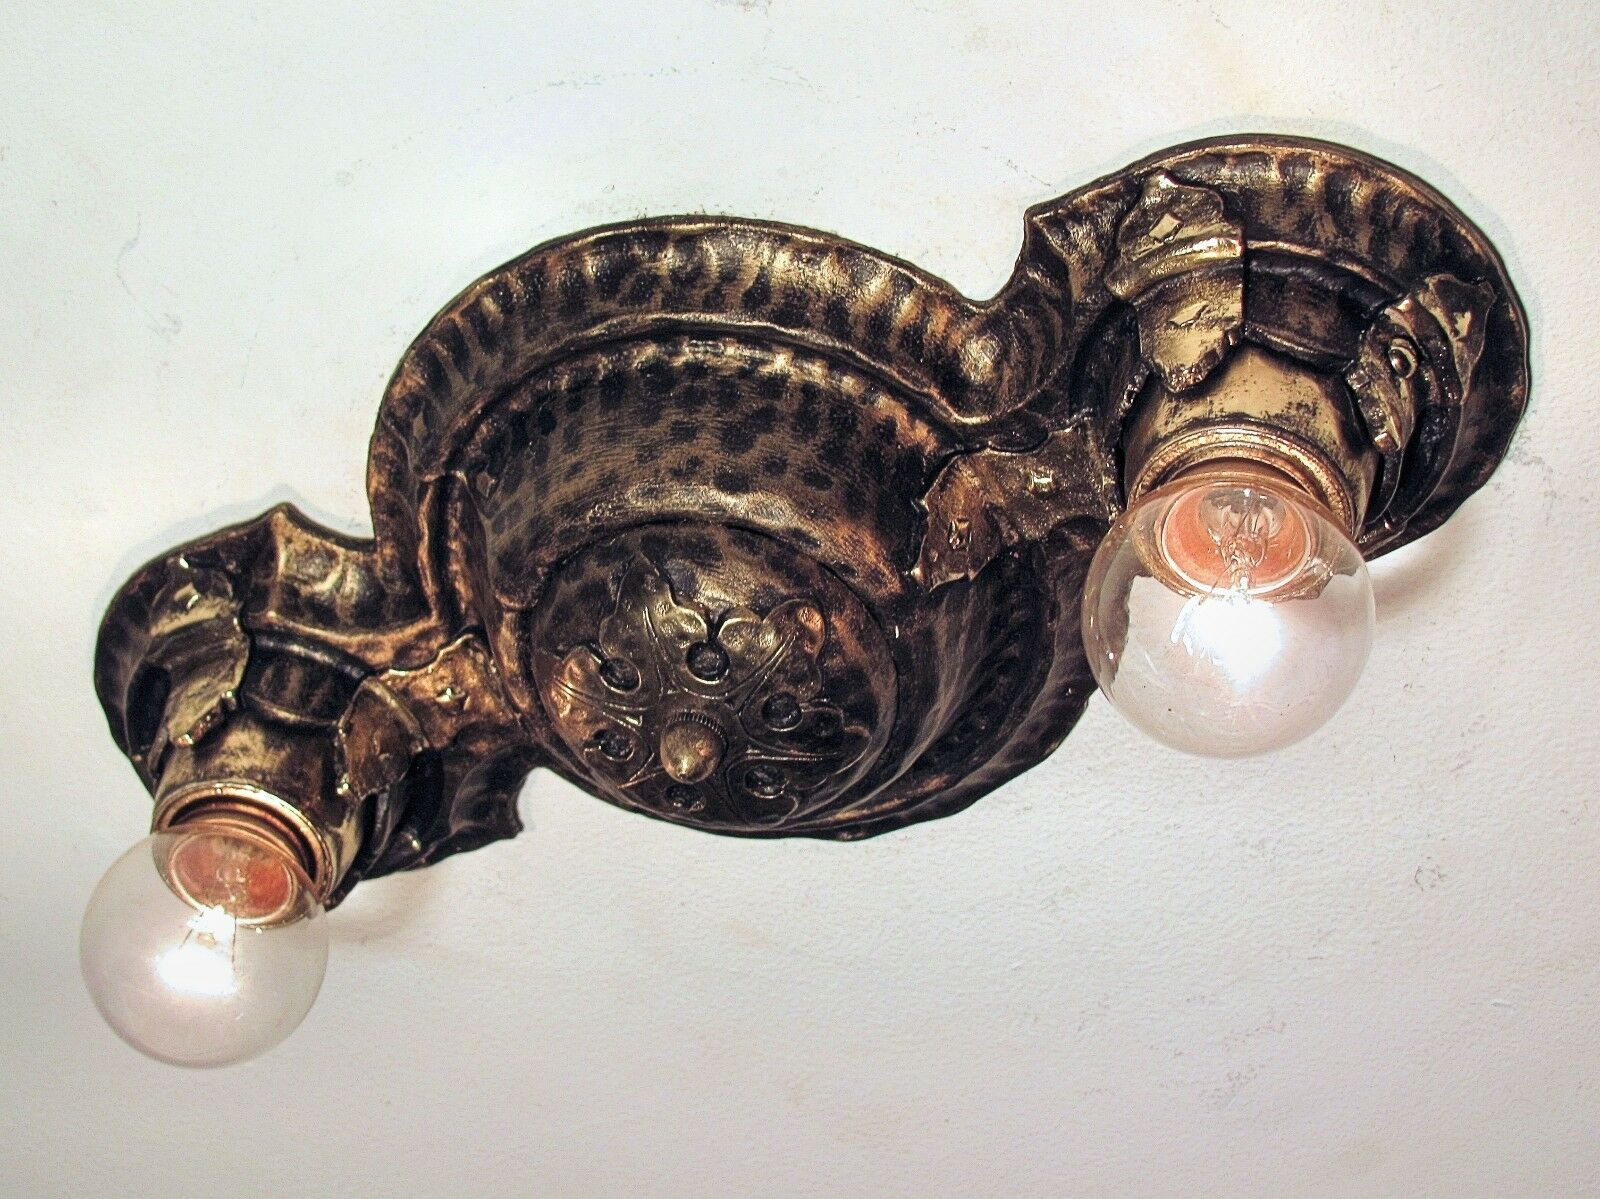 Professionally Restored Antique Hammered Gothic Arts and Crafts Light Fixture